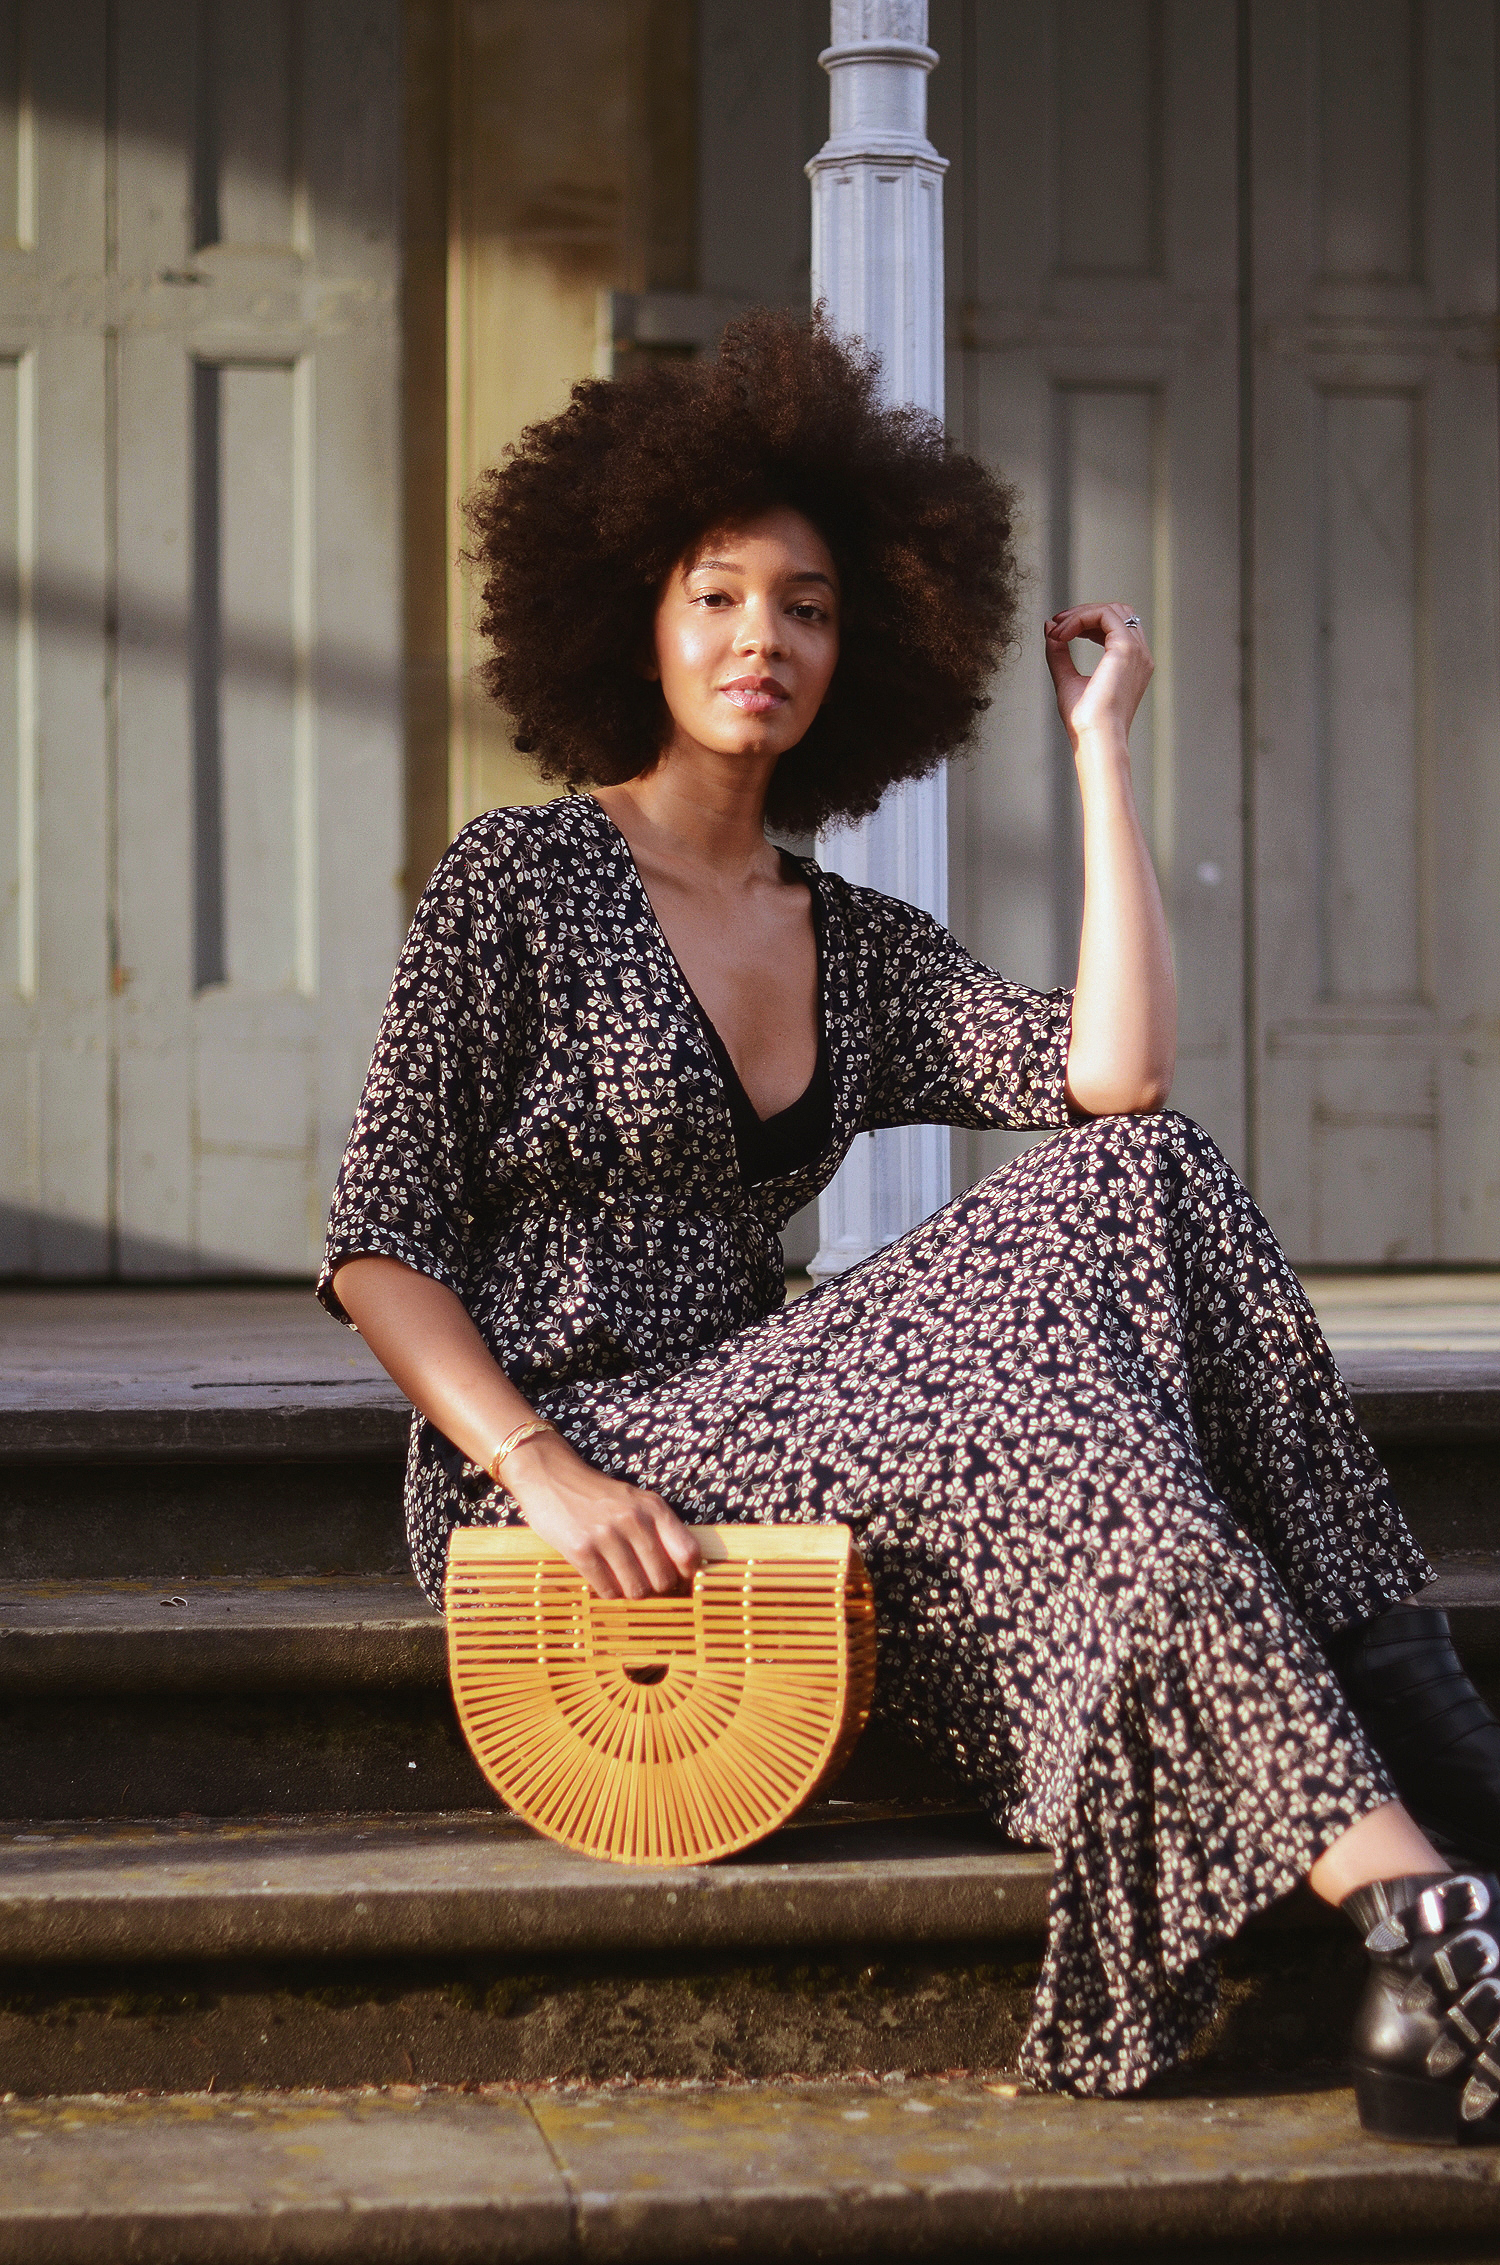 mercredie-blog-mode-geneve-blogueuse-bloggeuse-suisse-swiss-switzerland-robe-ganni-dress-cult-gaia-bag-small-toga-pulla-boots-buckled-afro-hair-nappy-curly-curls-big-fro-cheveux-frises3